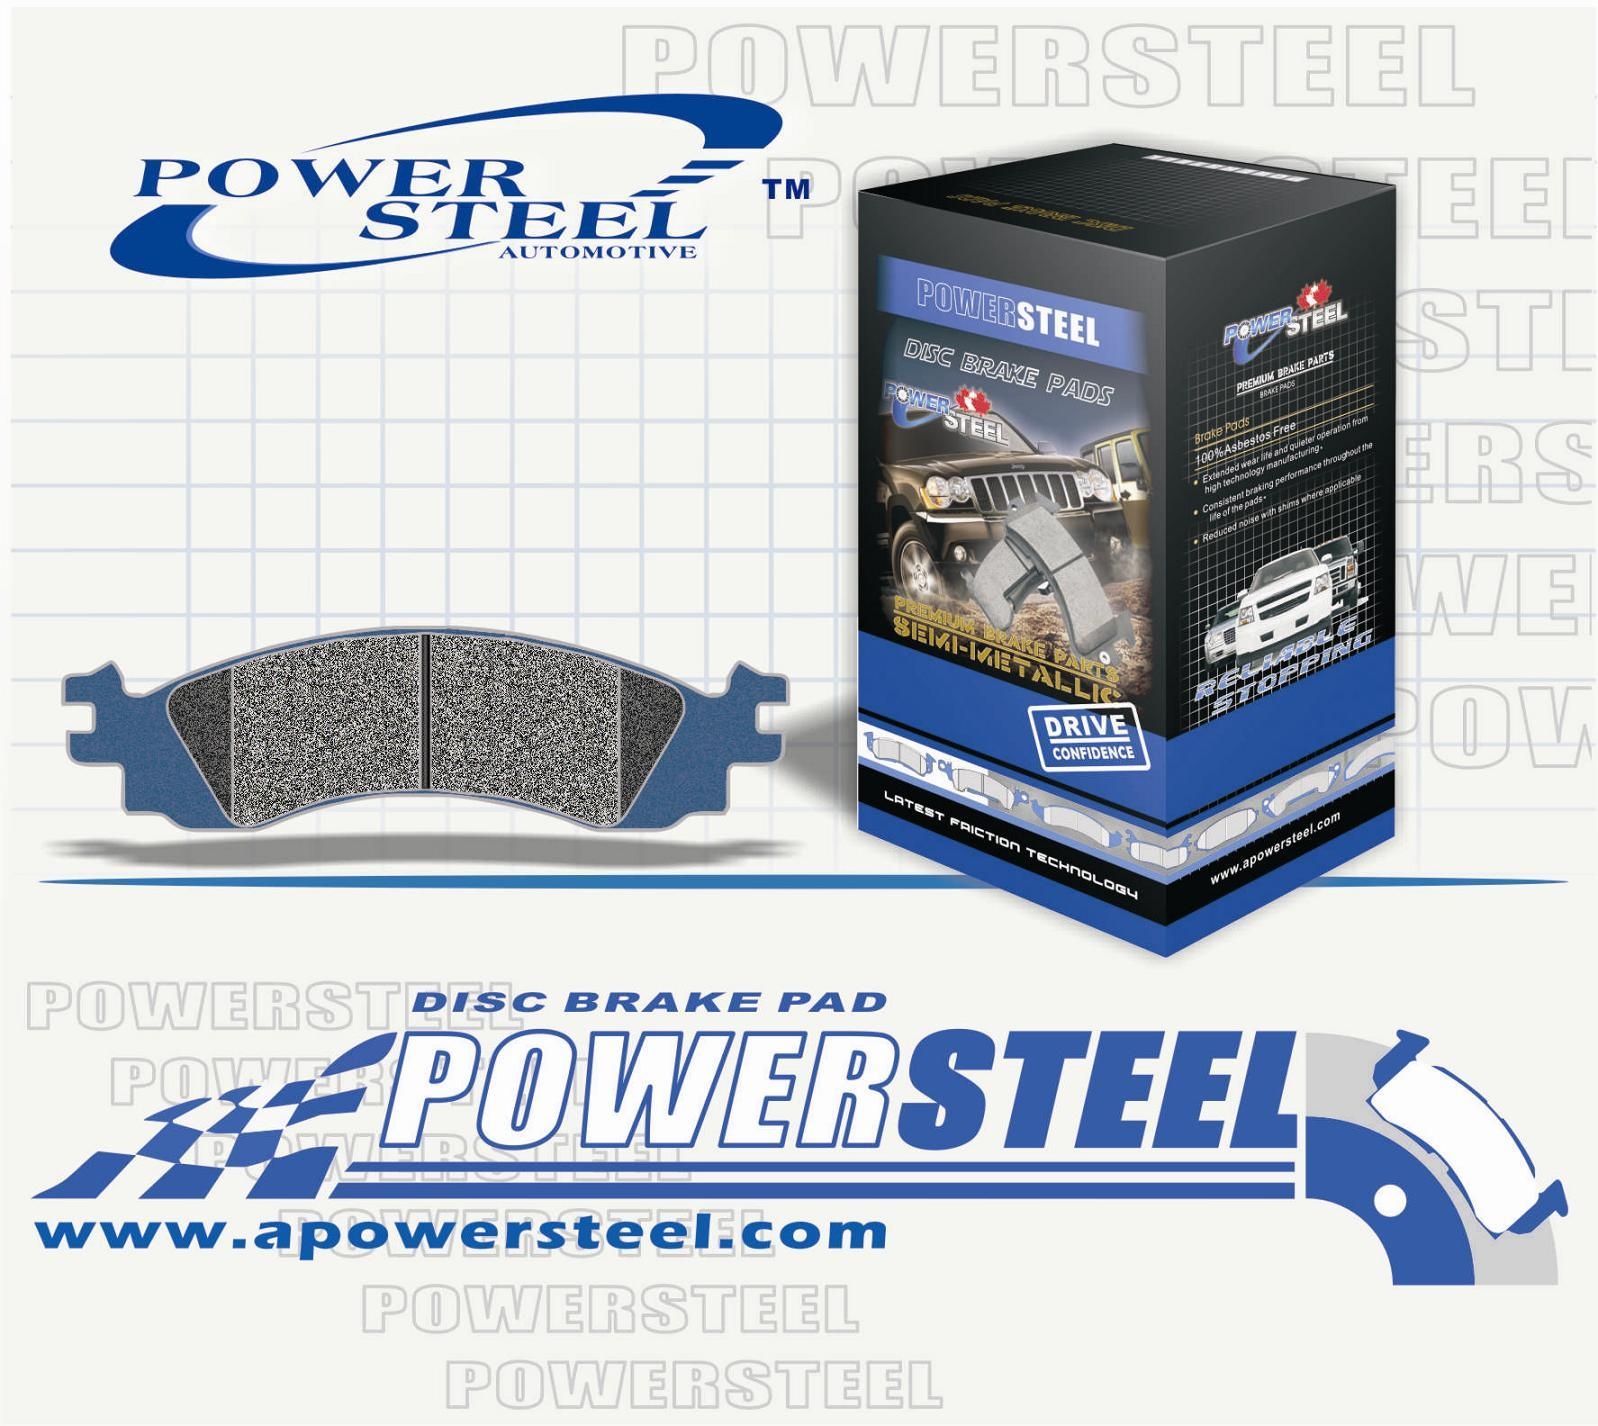 Brake Pad Full Coverage for American Cars